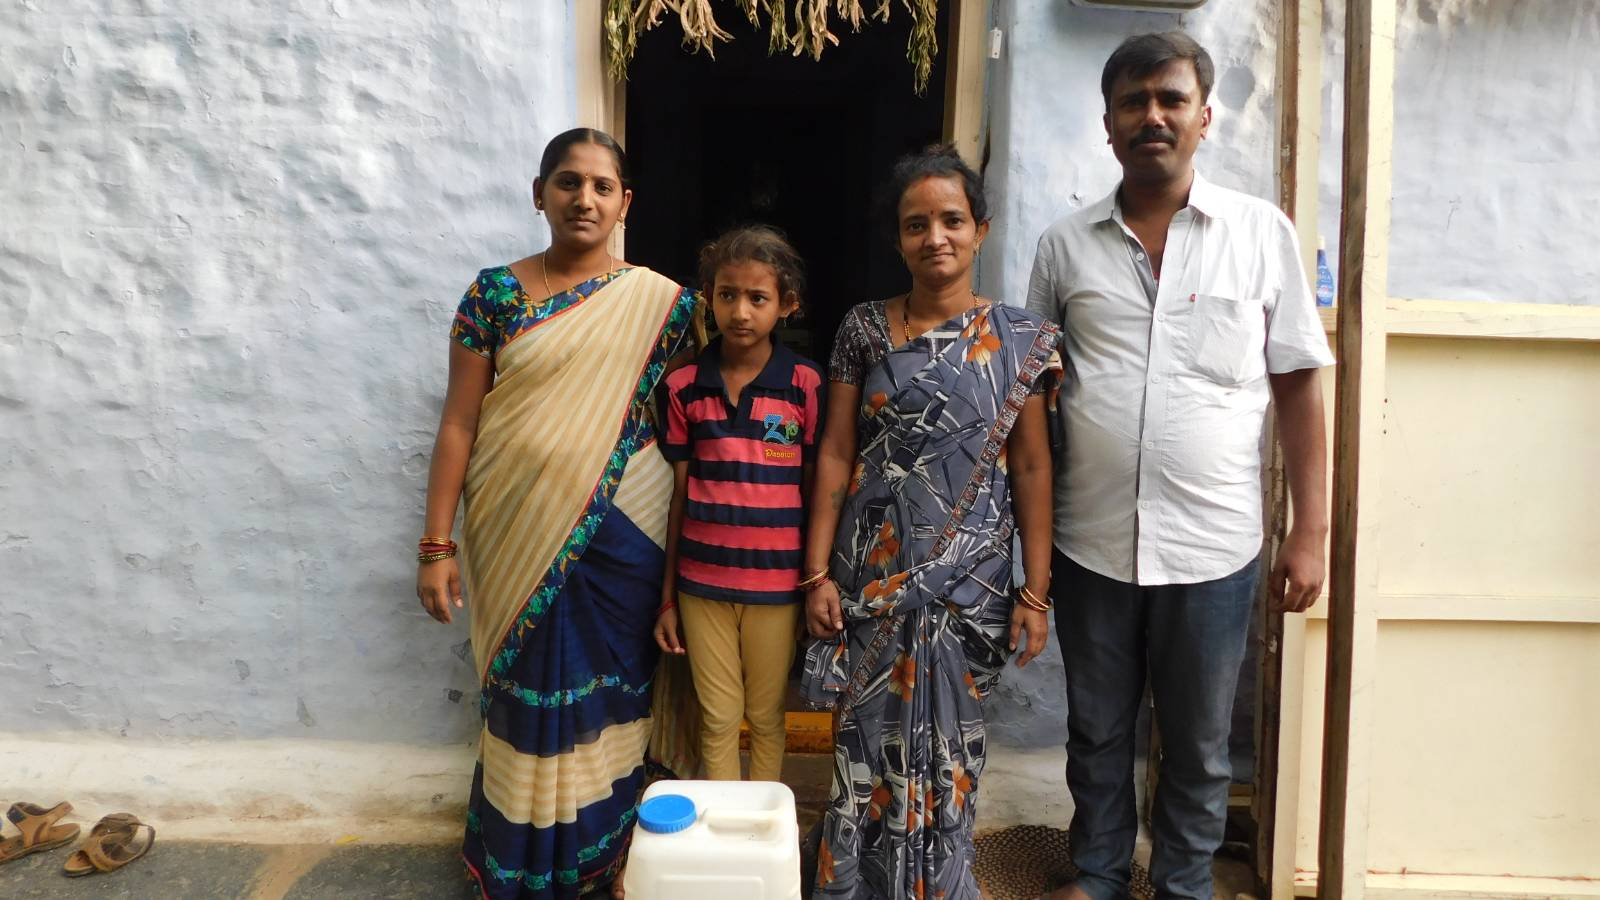 Access to clean drinking water